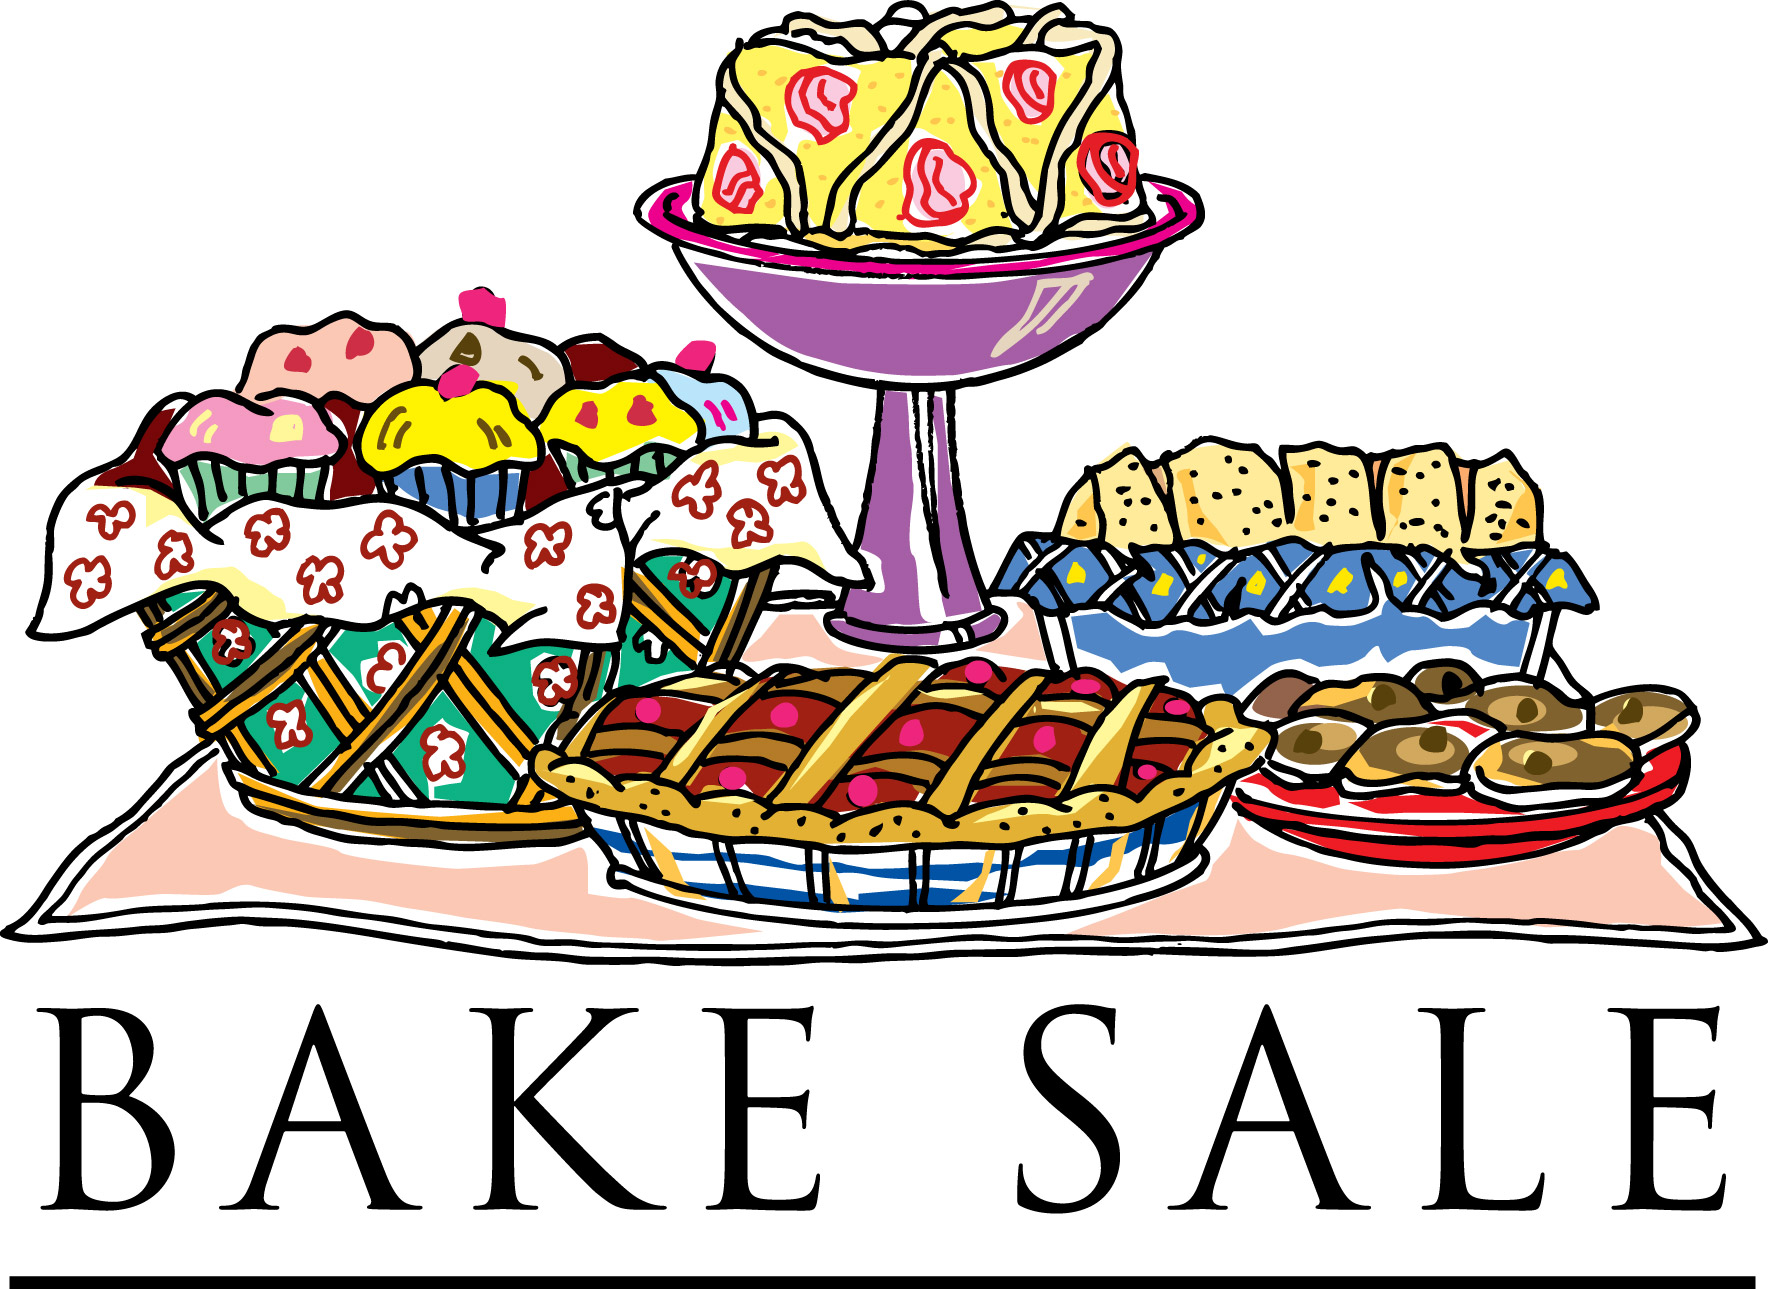 Easter Bake Sale Platte County Senior Outreach